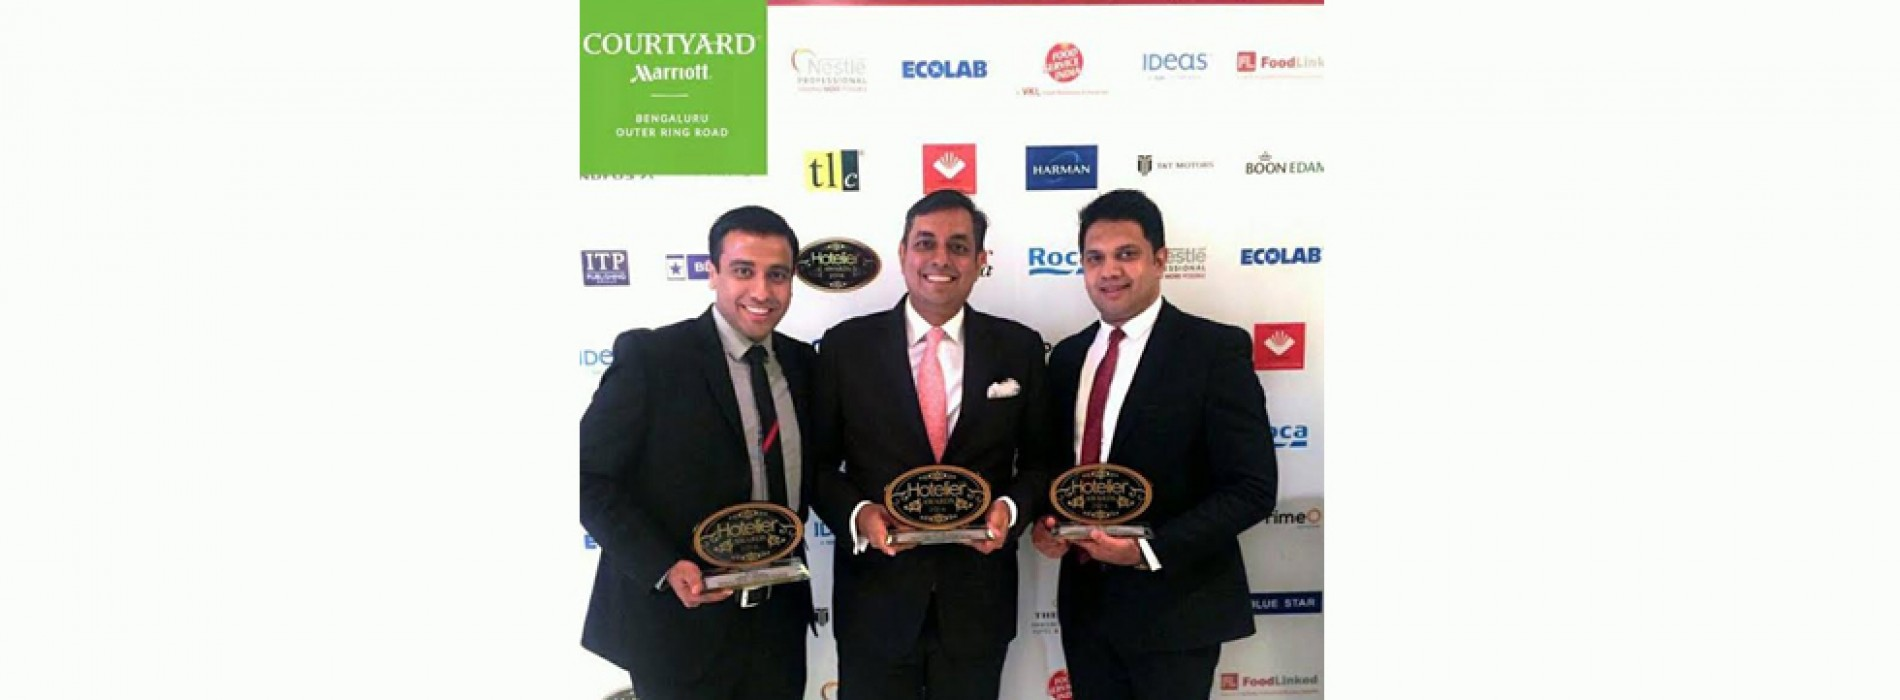 Courtyard by Marriott and Fairfield by Marriott Outer Ring Road, win at the 'Hotelier India Awards' 2016